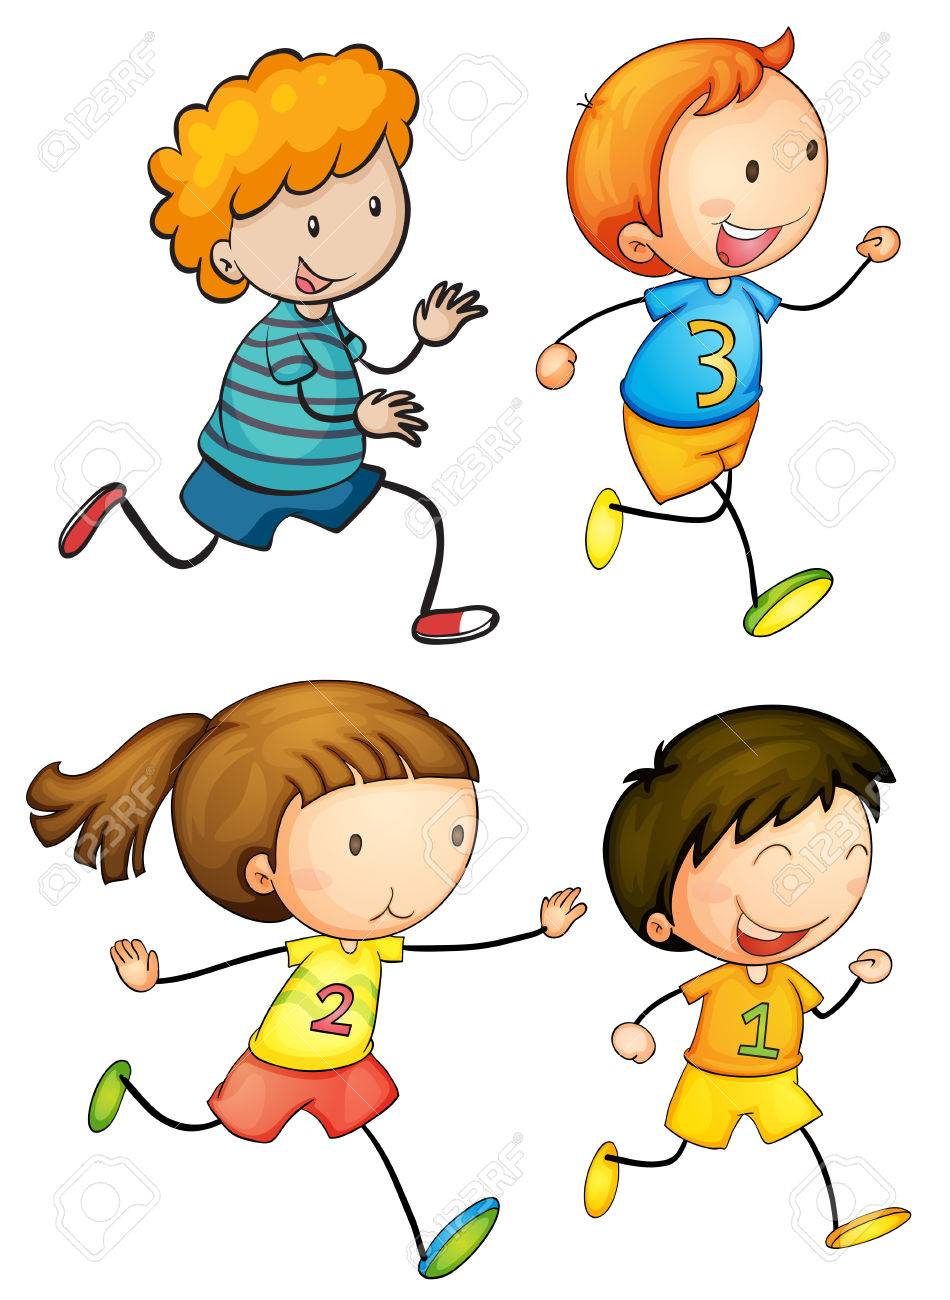 Illustration Of Simple Kids Running Royalty Free Cliparts, Vectors ...